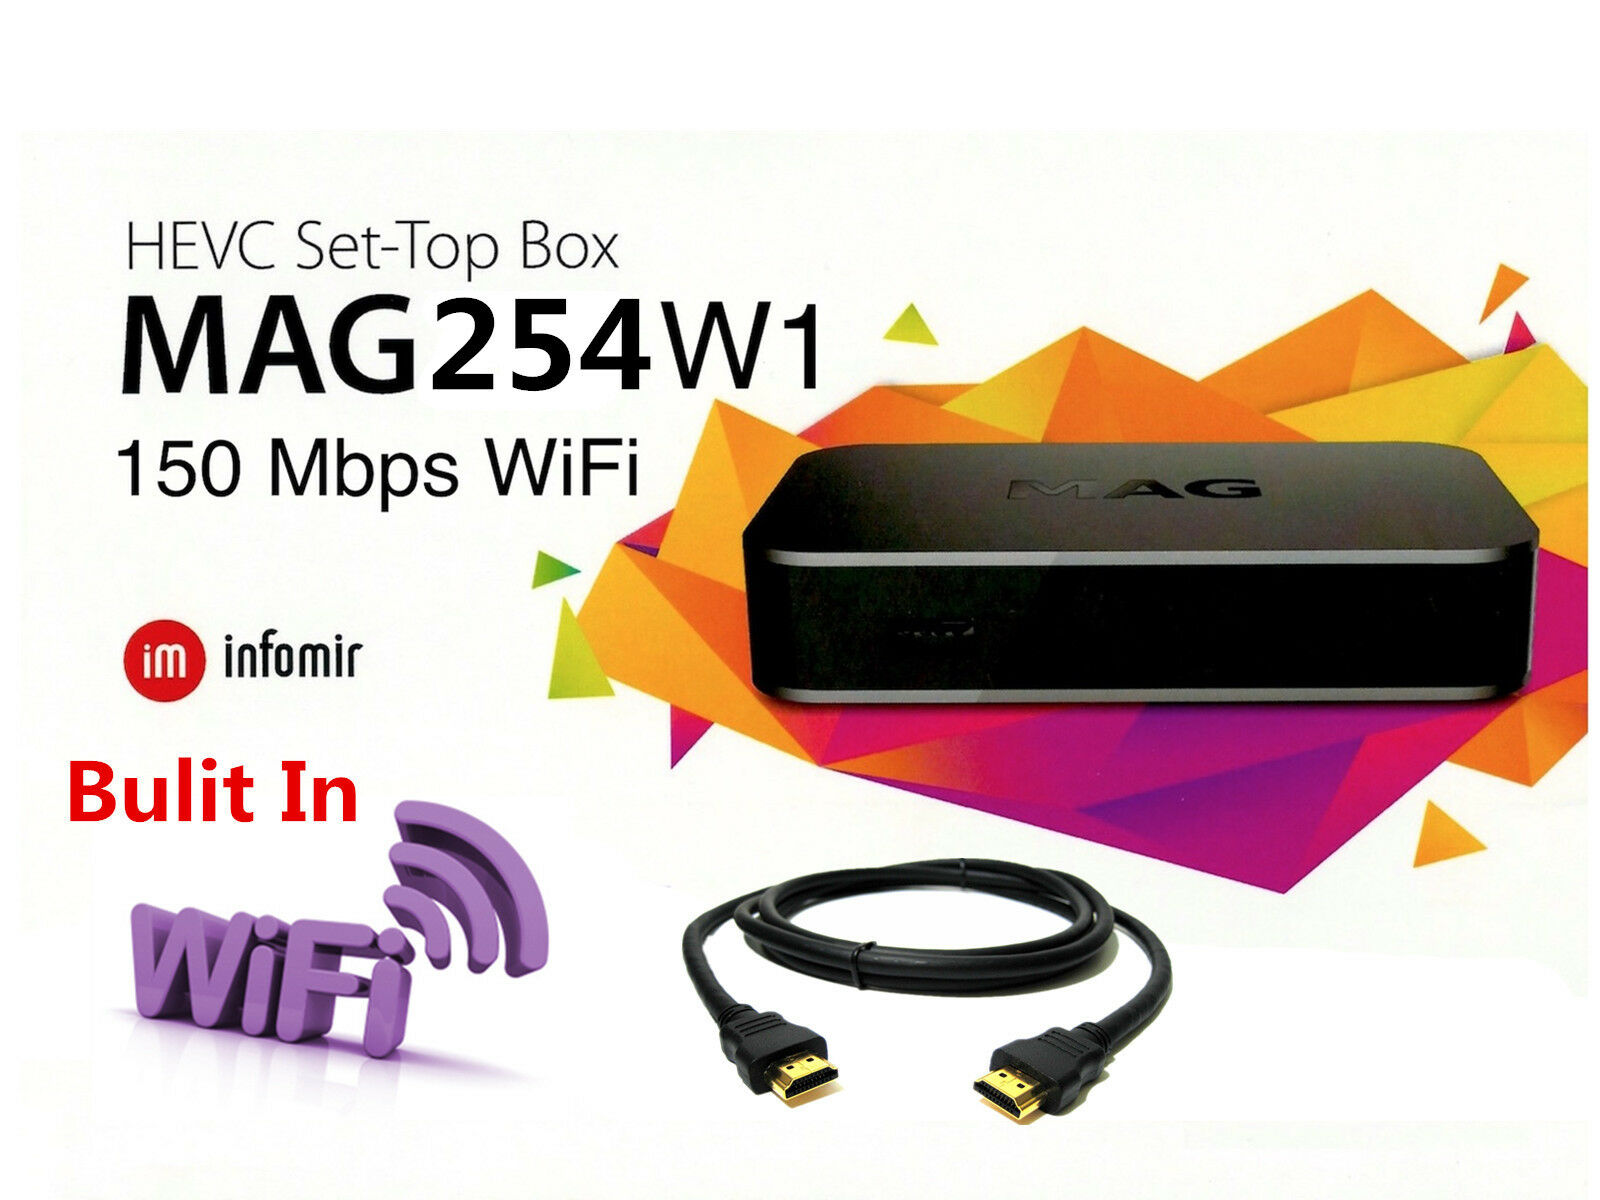 Infomir Mag254w1 Internet Media Streamer Black Ebay To The Cable Line Ready Tvs Or Through An Adapter Box Set Top Stock Photo